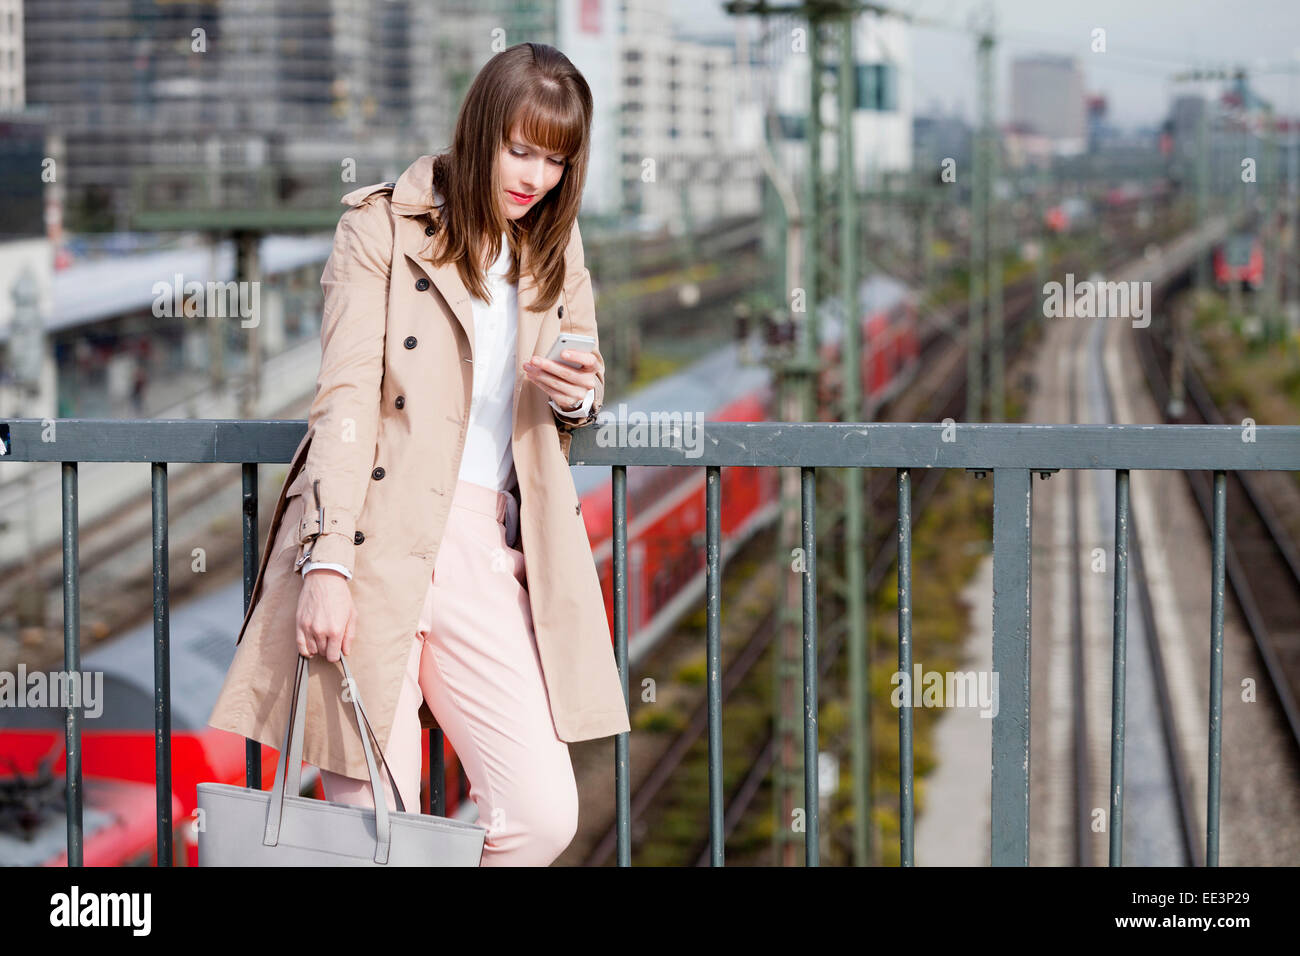 Young woman using phone outdoors, Munich, Bavaria, Germany - Stock Image